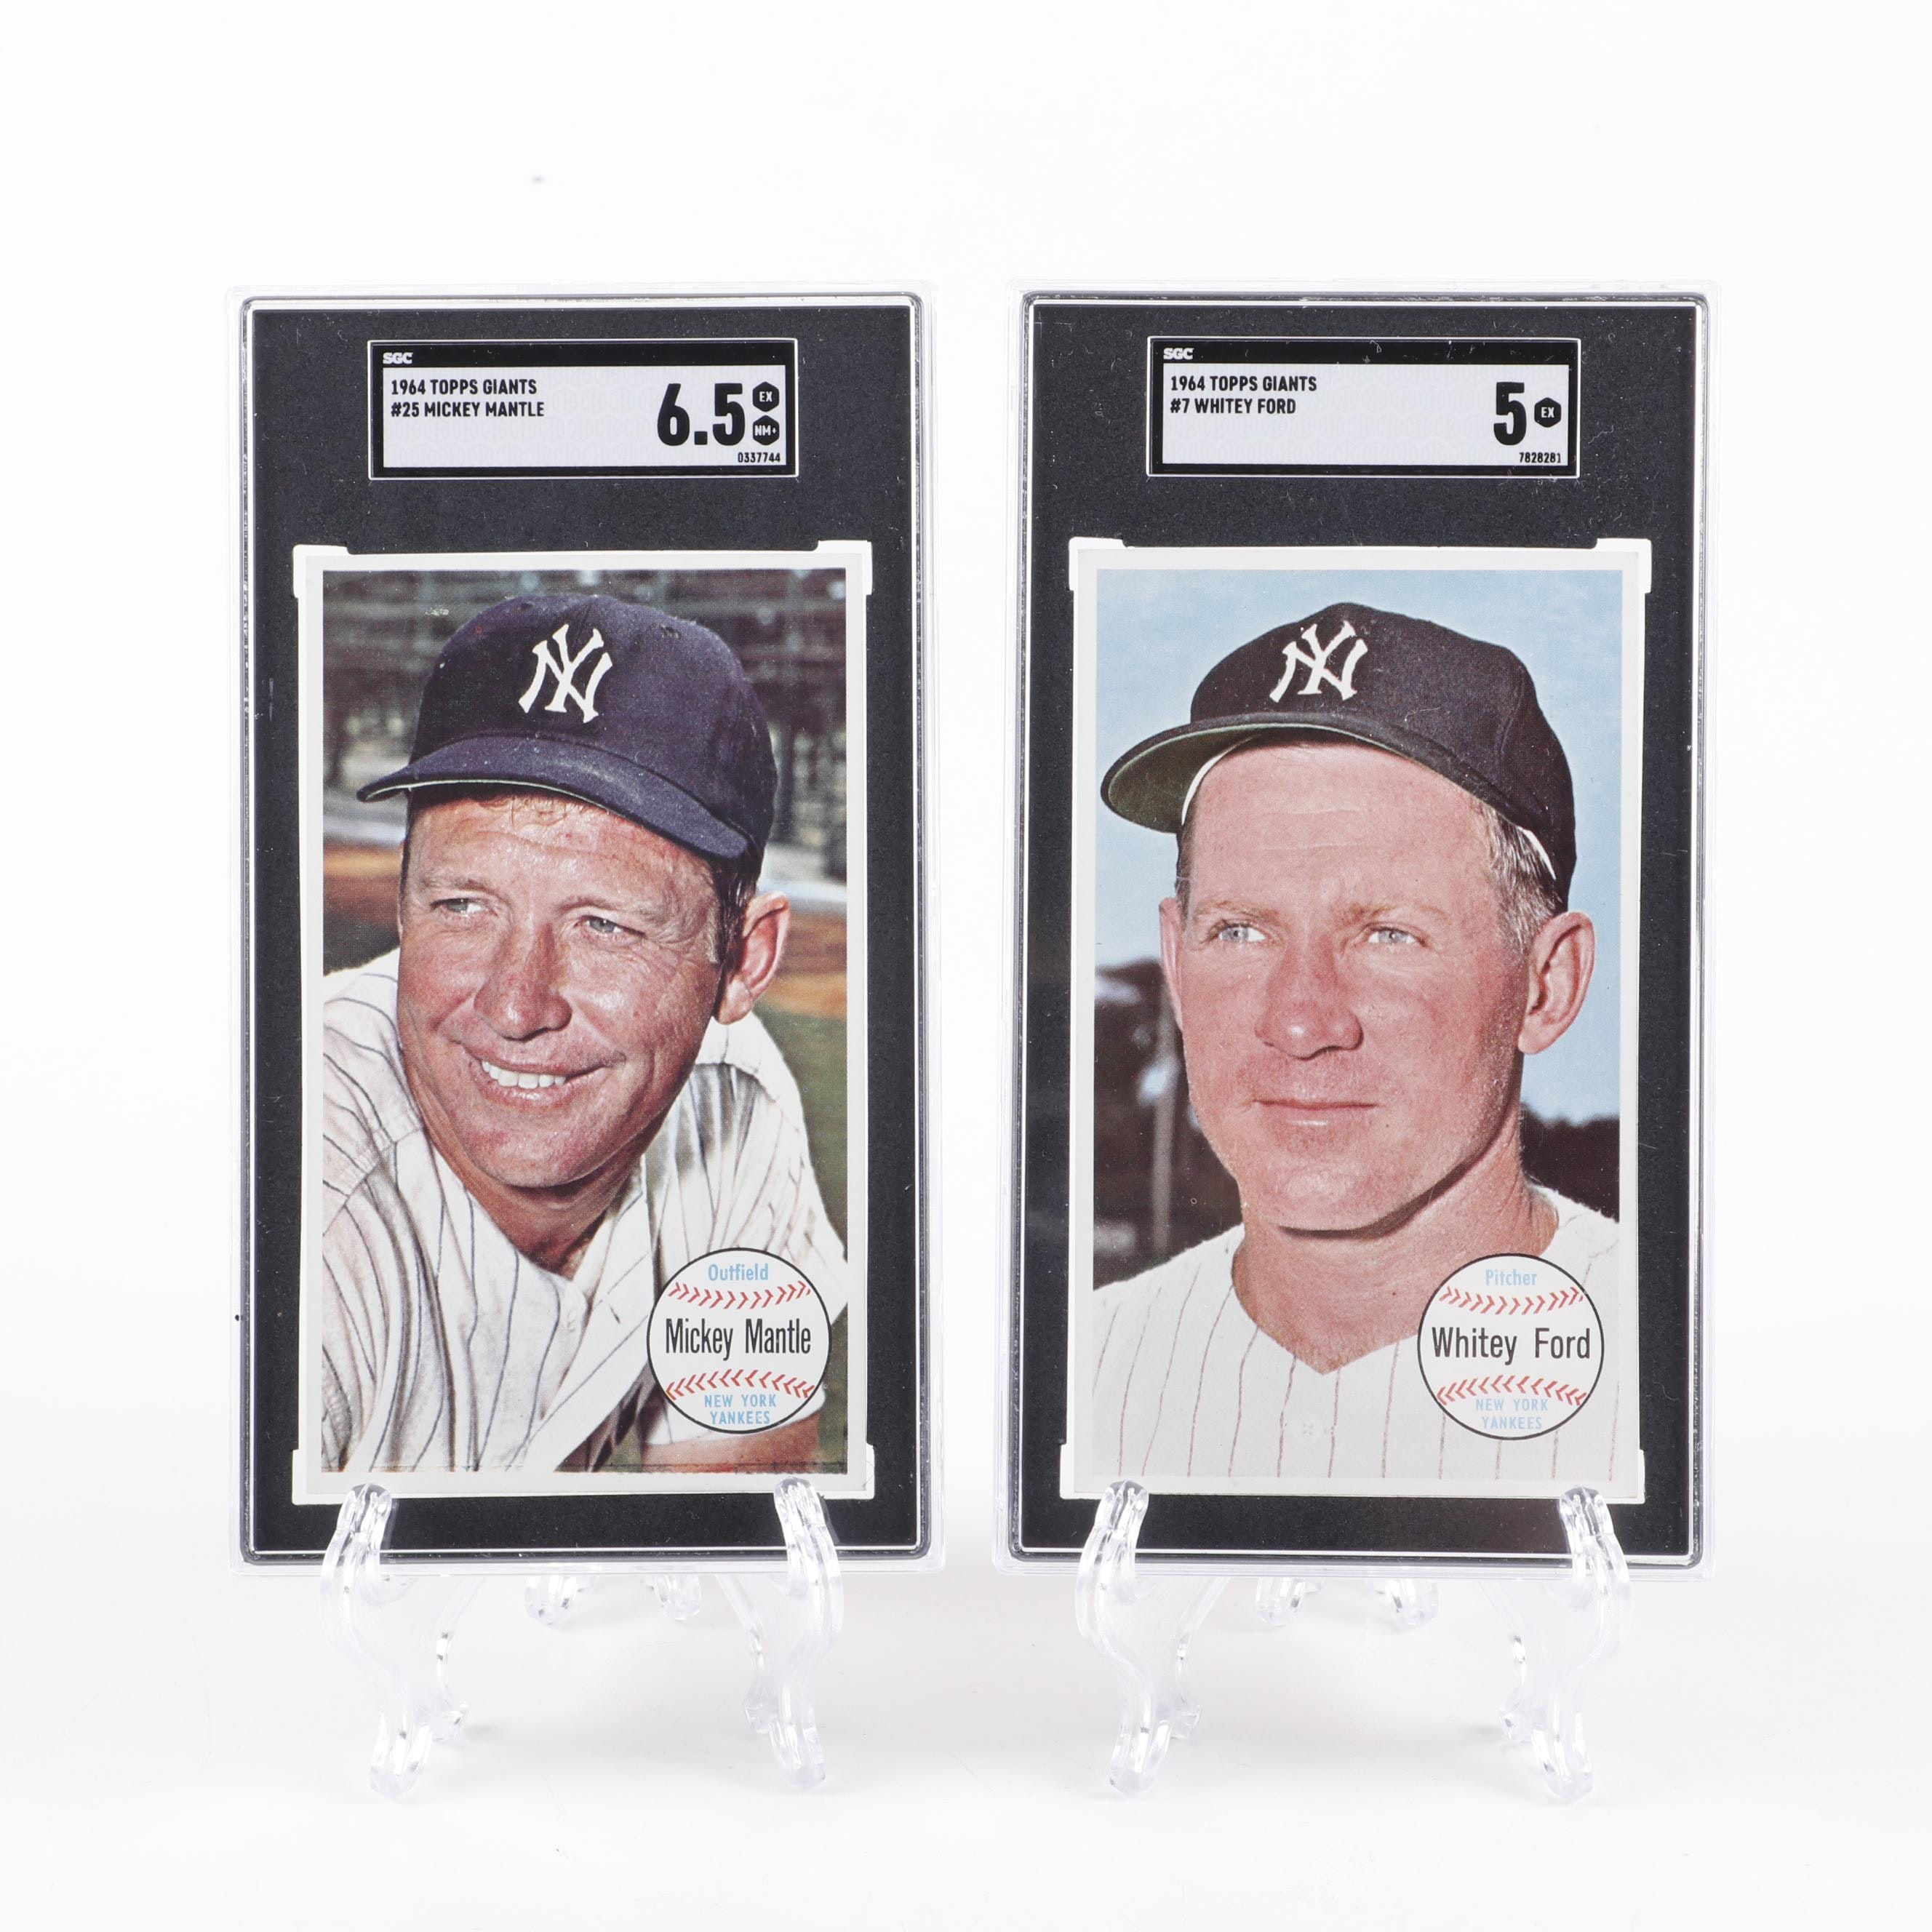 1964 Mickey Mantle and Whitey Ford Topps Baseball Cards